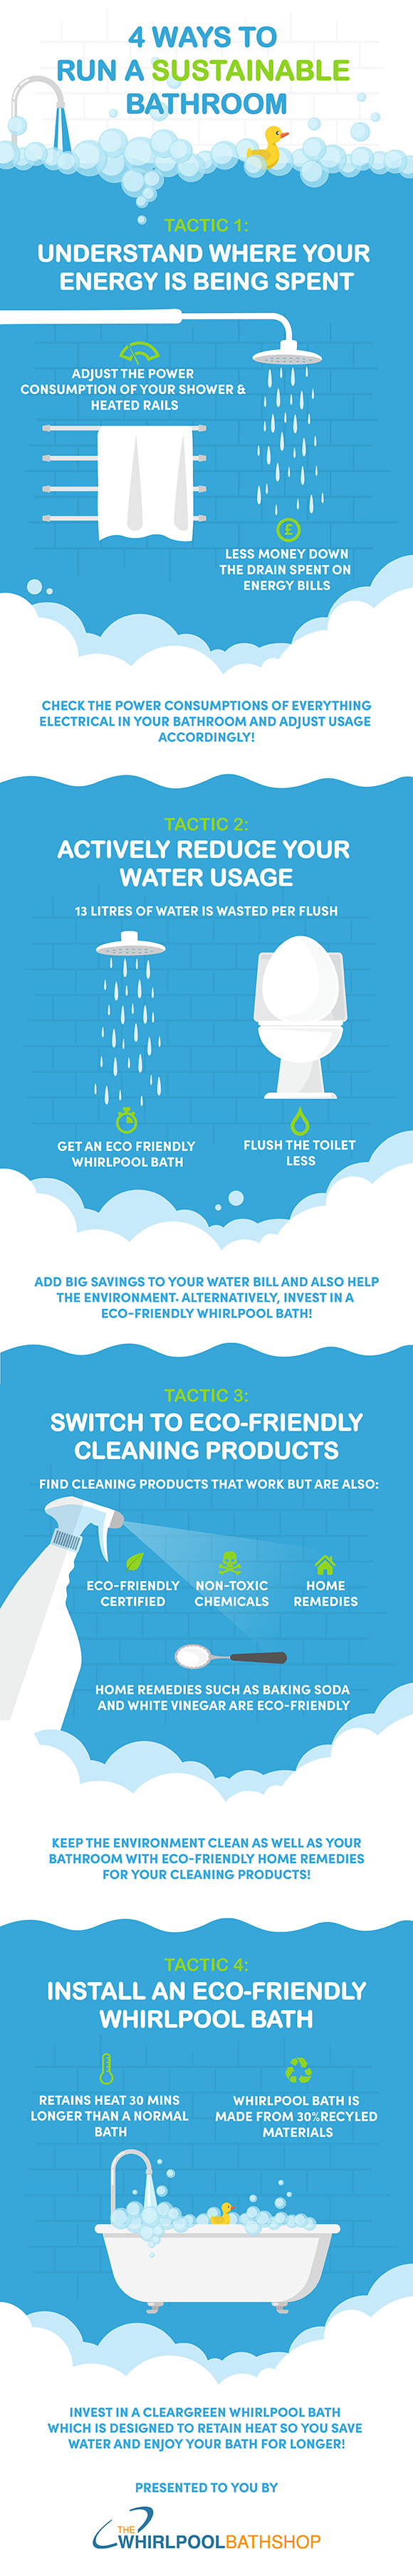 4 Ways To Run A Sustainable Bathroom